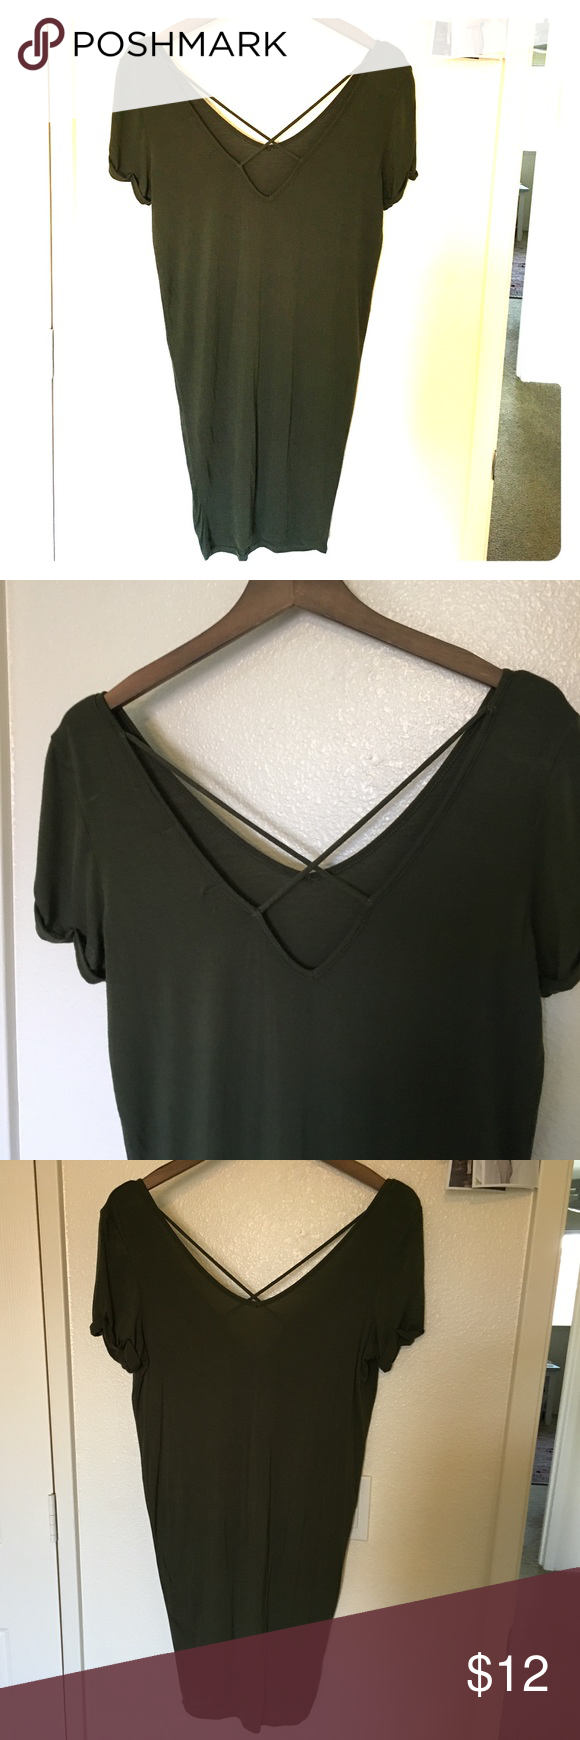 Olive green tunic dress Soft tshirt material. Cross back detail, rolled cuff sleeves. Stretchy and flattering. Can be worn on its own as a dress or with leggings/pants as a tunic 👌🏼 fits small & medium. Bought at a Hawaii-exclusive boutique 🌴 never worn mahina  Tops Tunics